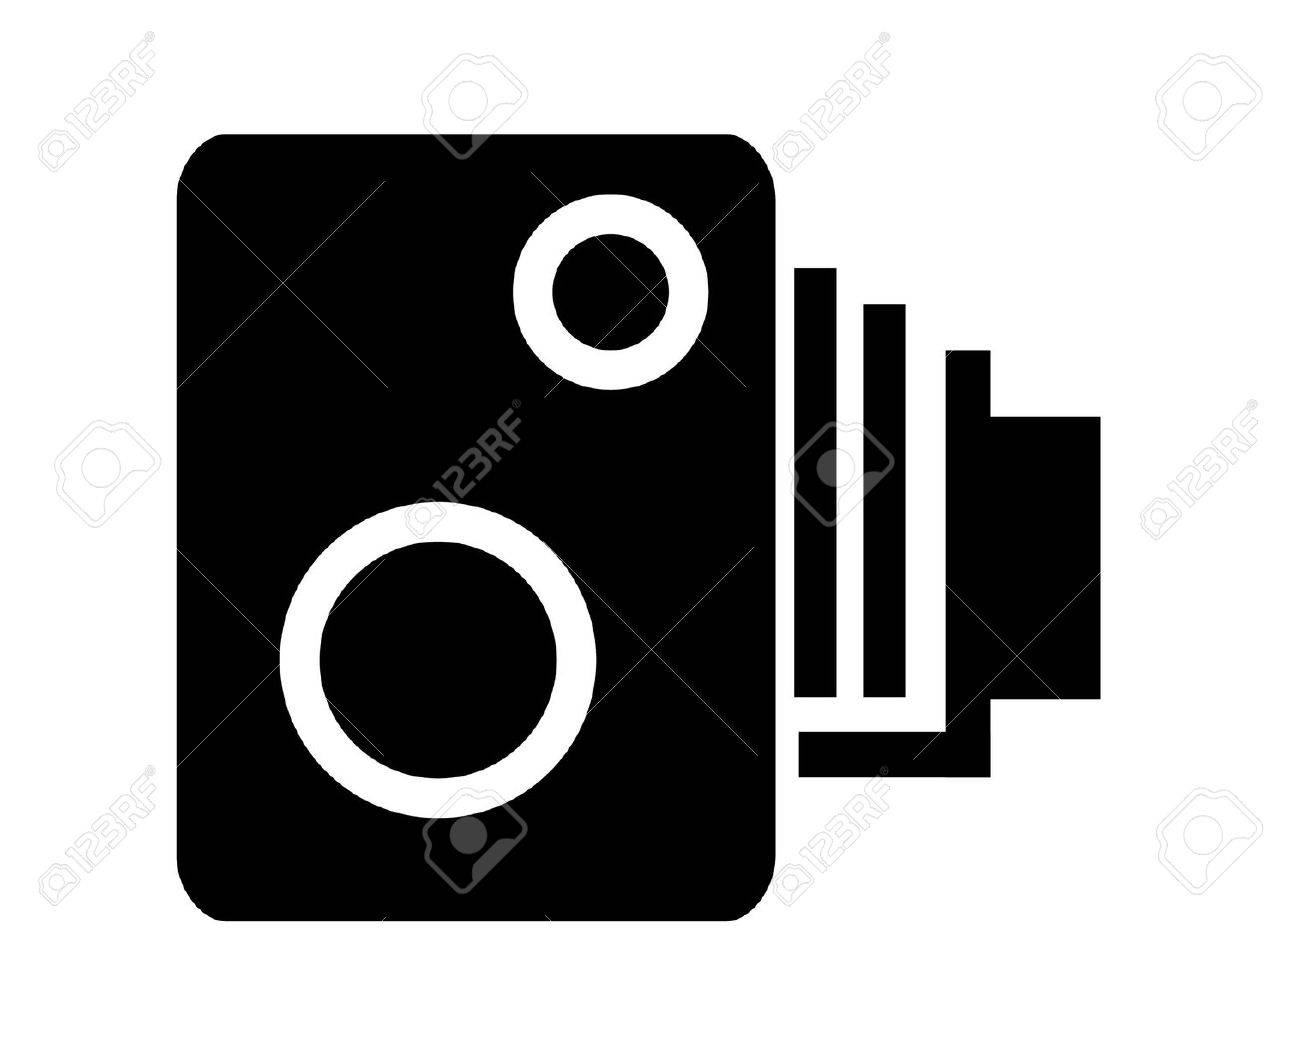 Illustrated Black And White Speed Camera Symbol Stock Photo Picture